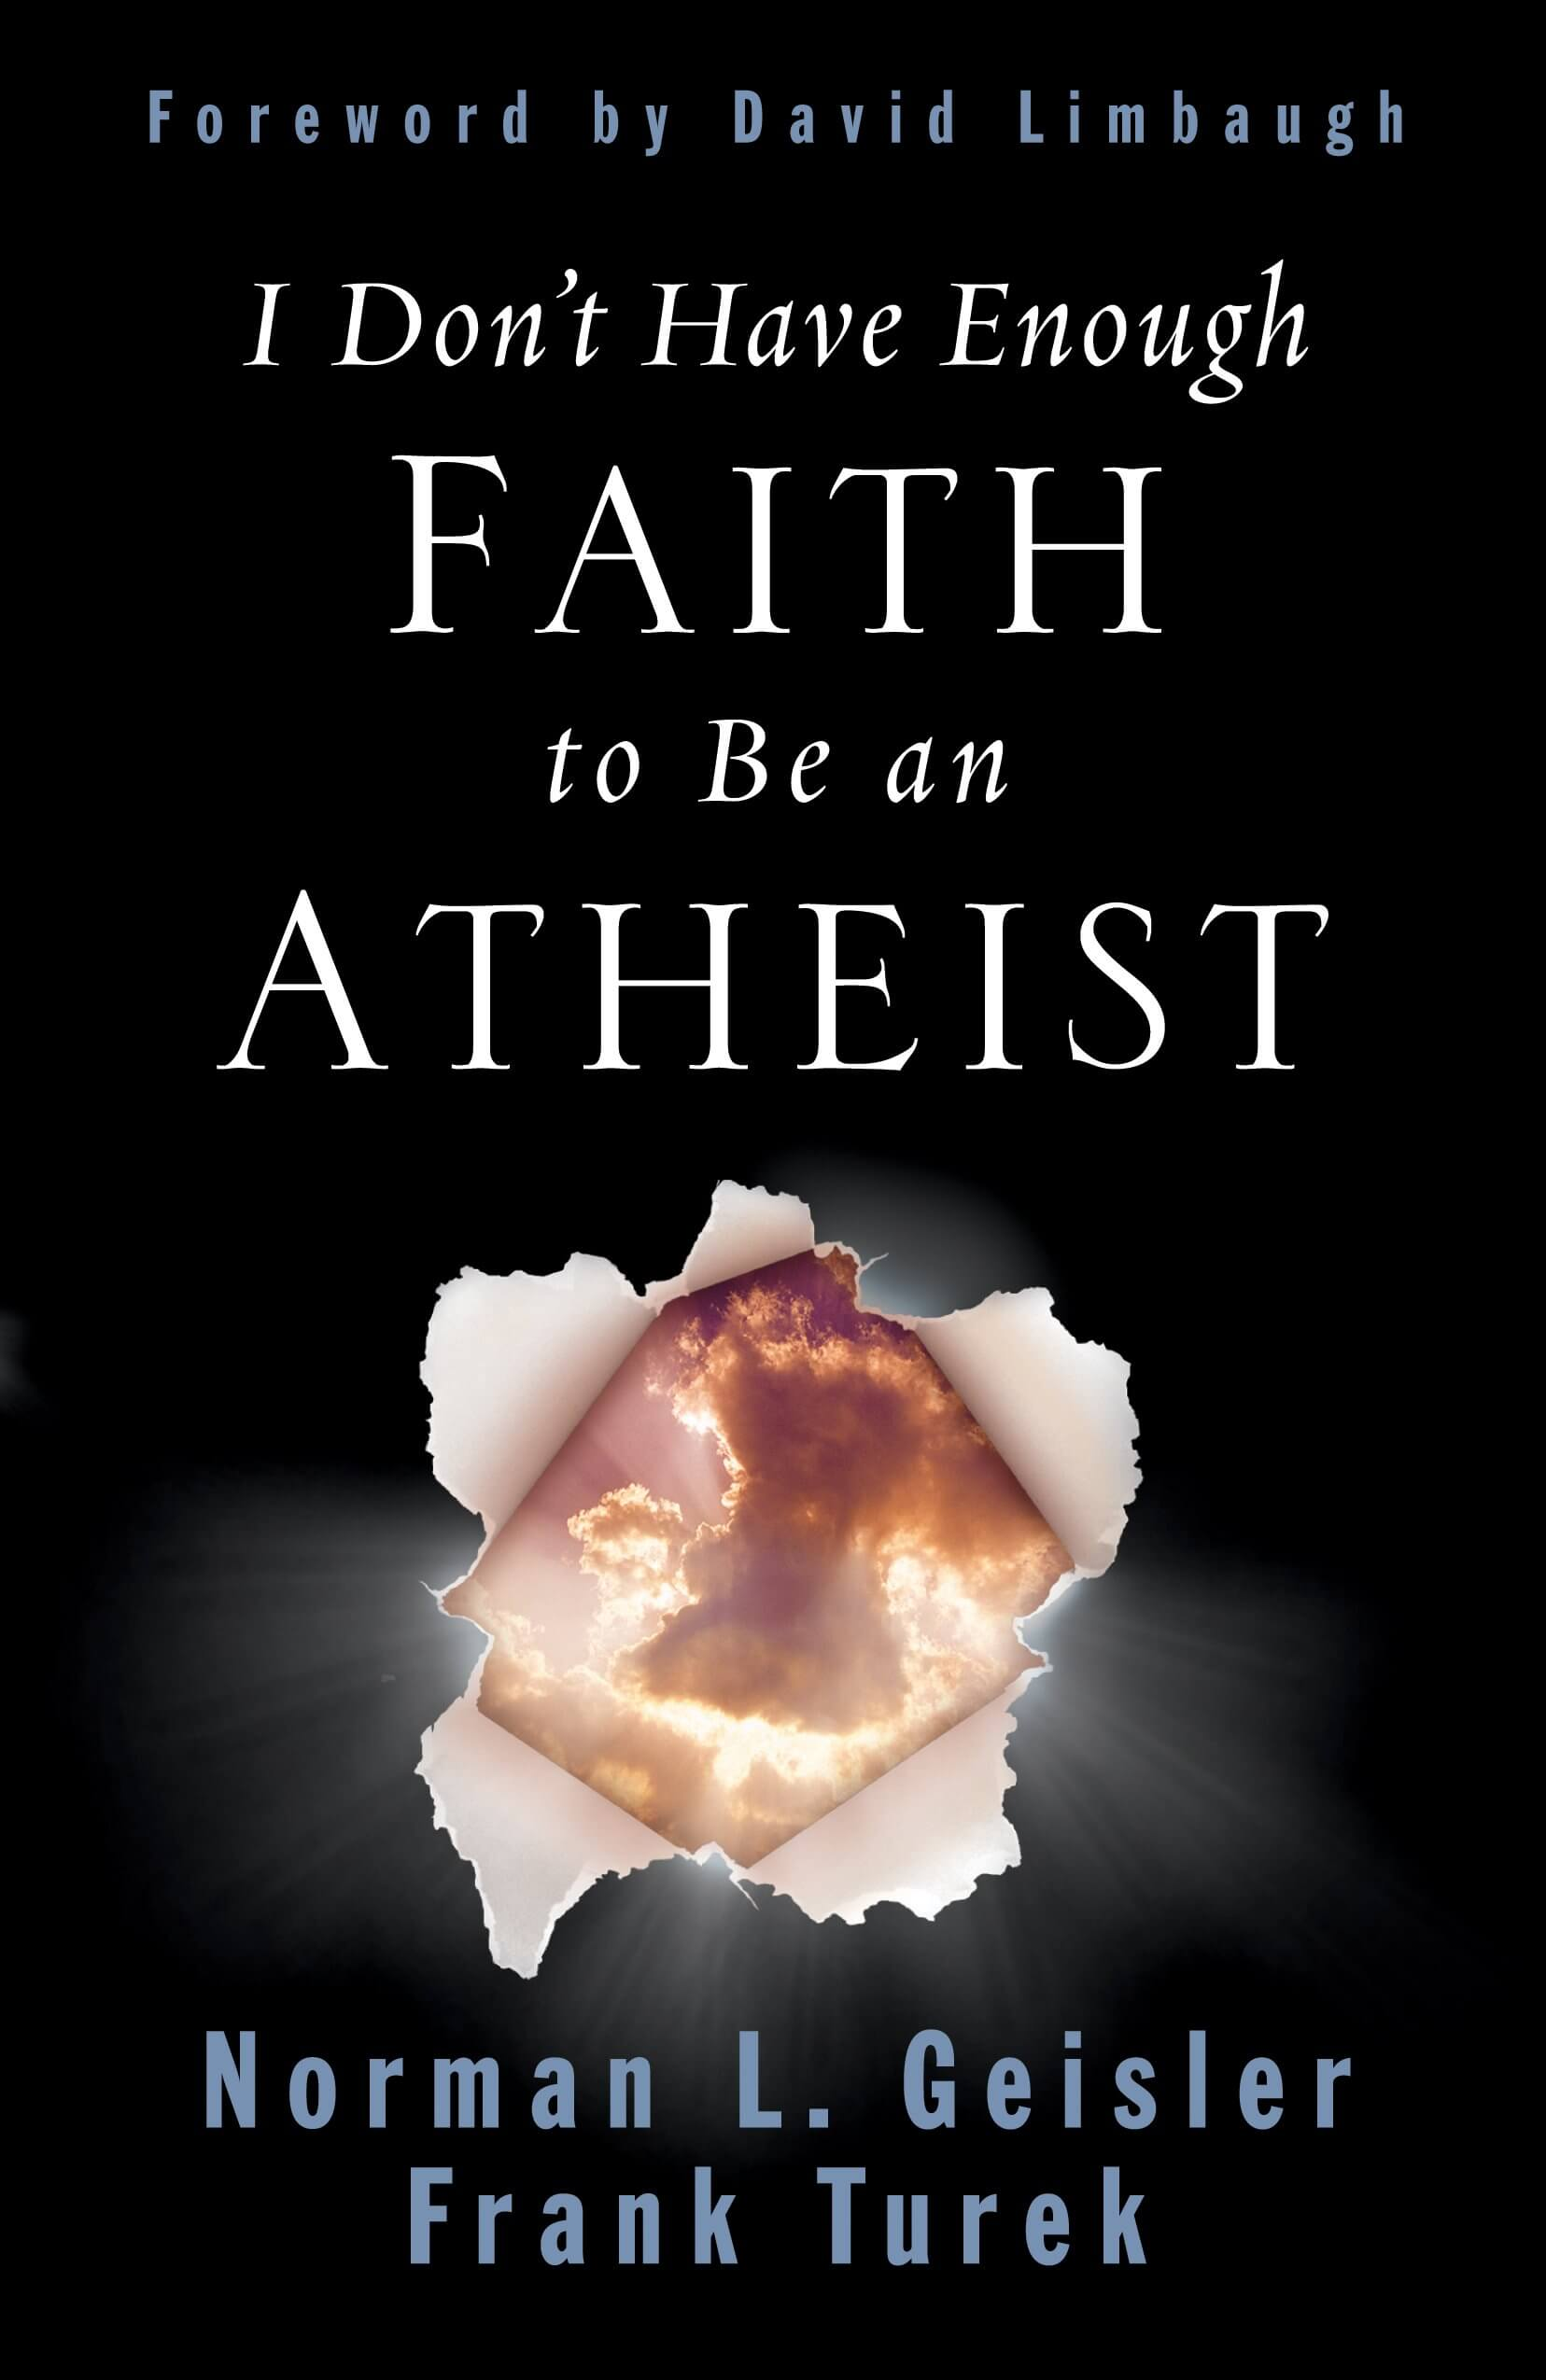 I-DONT-HAVE-ENOUGH-FAITH-TO-BE-AN-ATHEIST-FRANK-TUREK